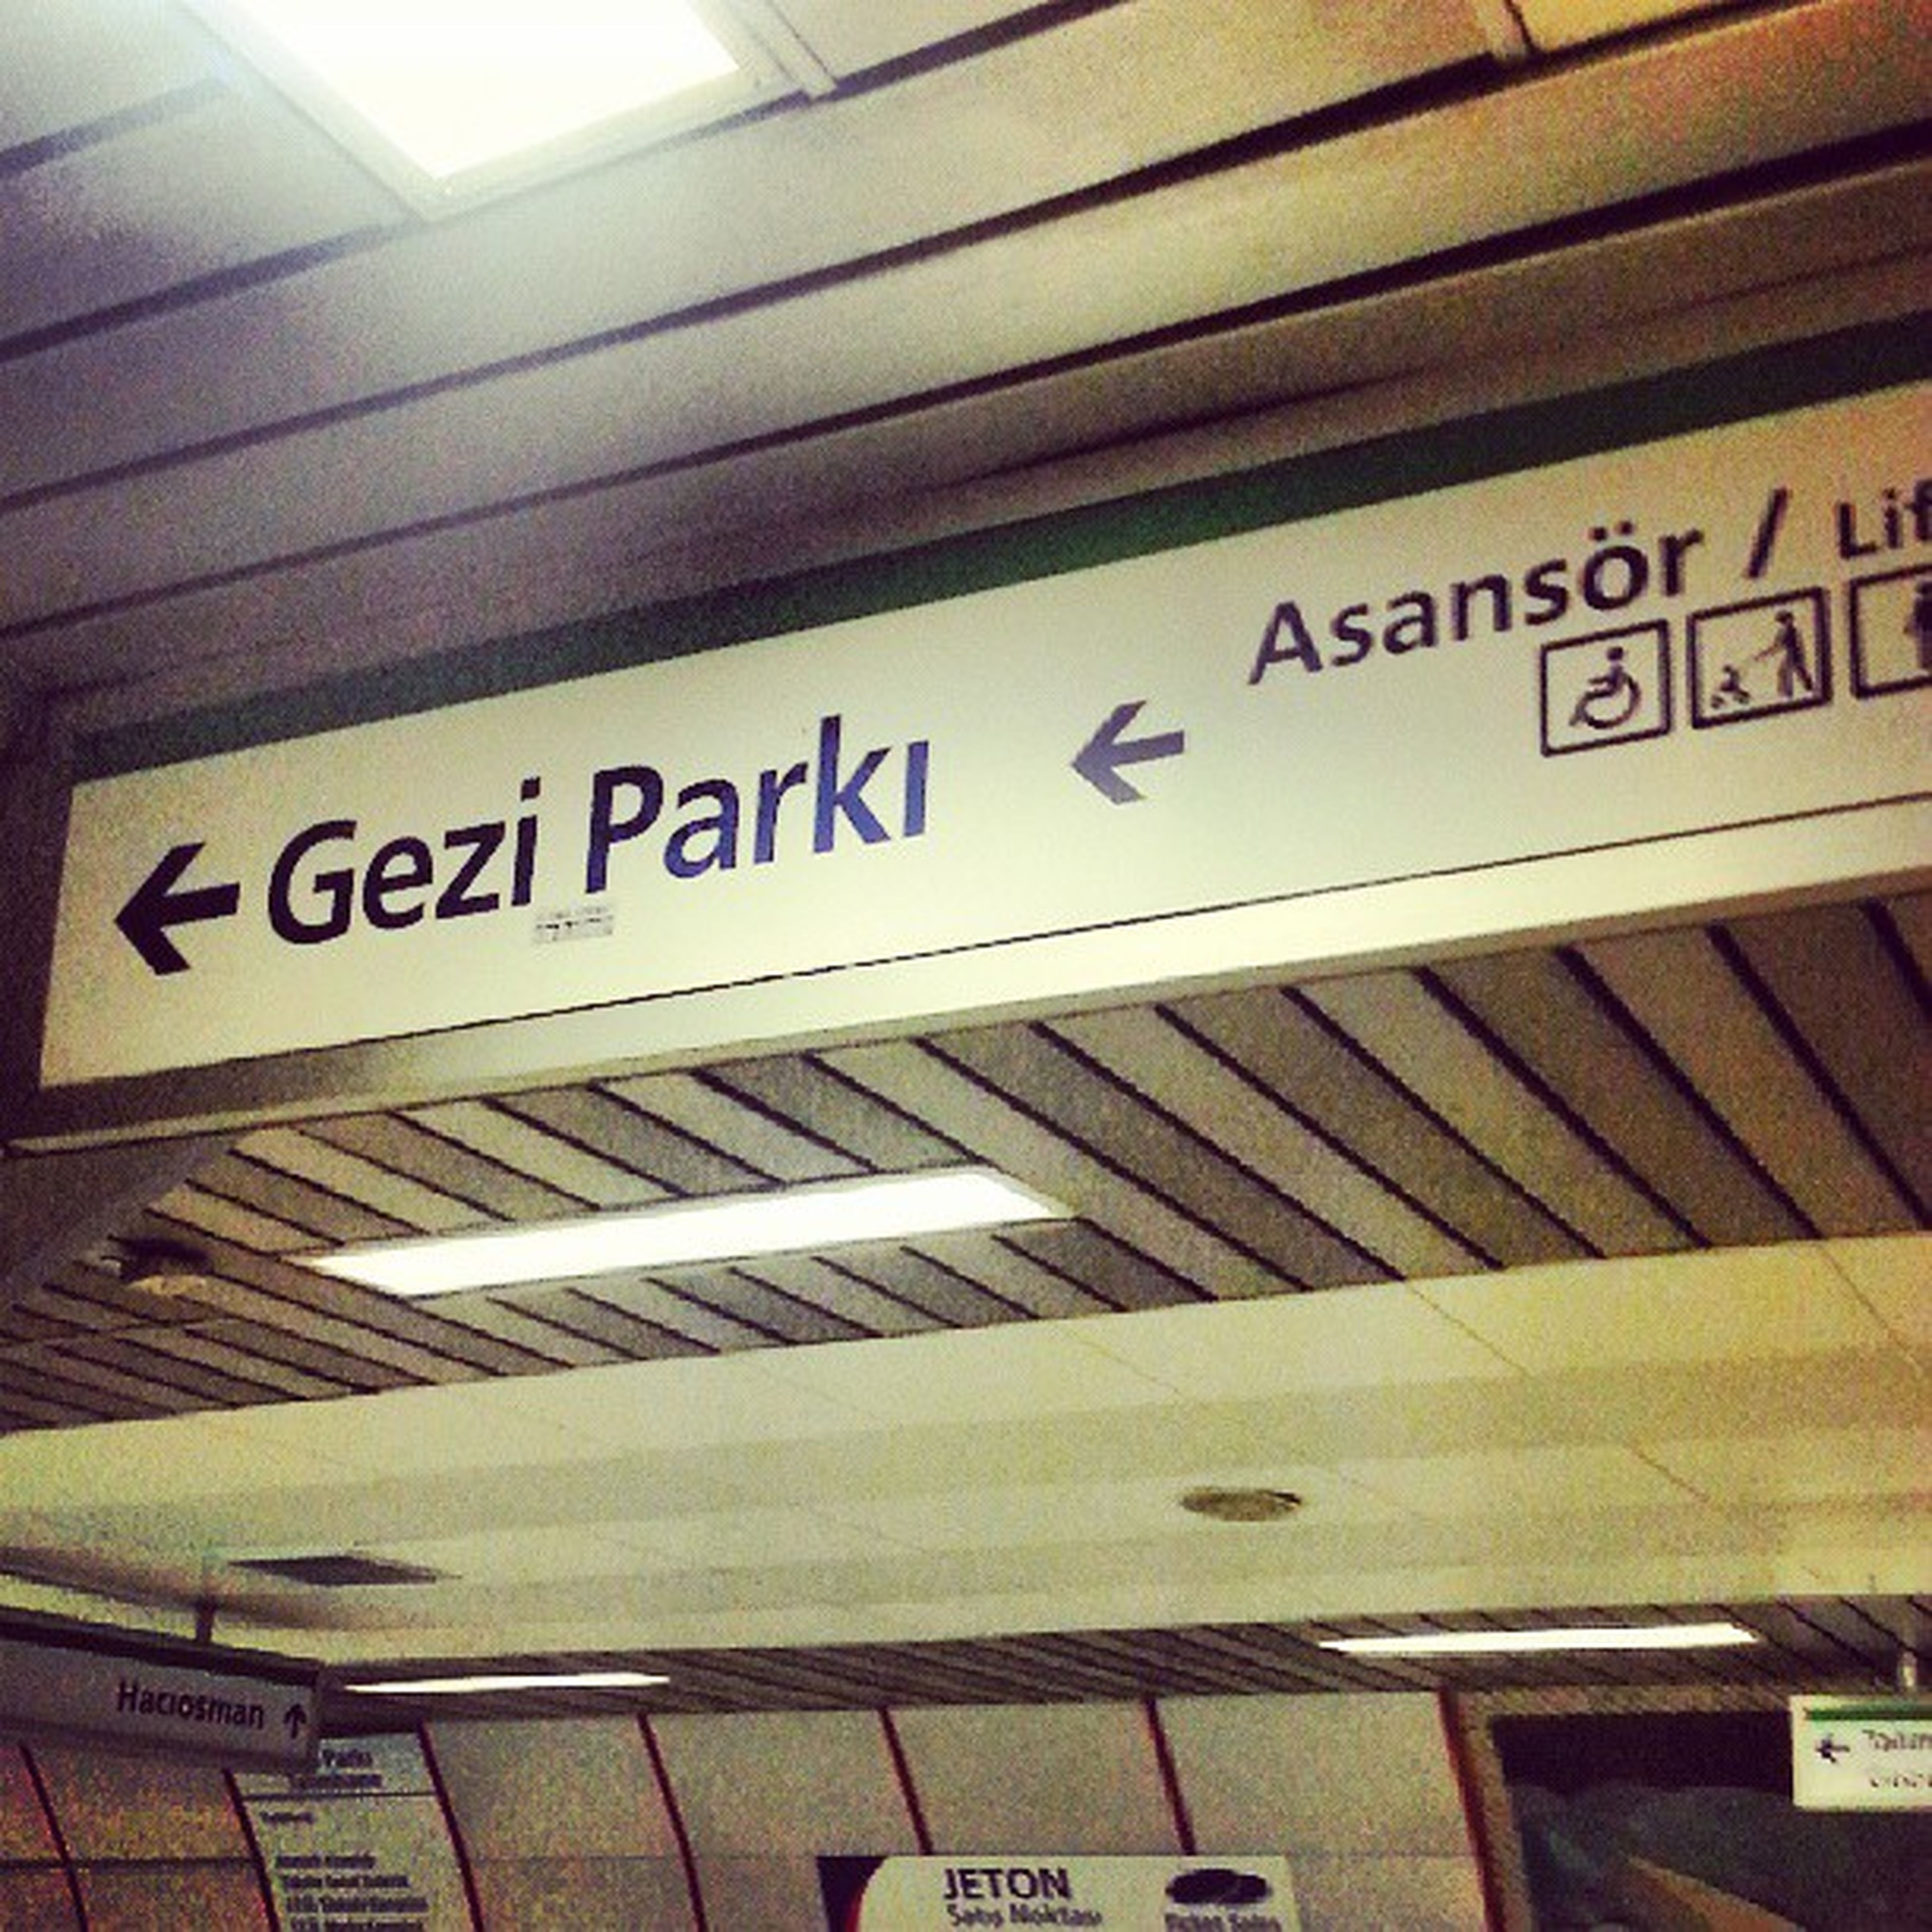 text, western script, communication, indoors, non-western script, information sign, low angle view, information, architecture, capital letter, built structure, sign, railroad station, number, no people, subway station, ceiling, public transportation, arrow symbol, guidance